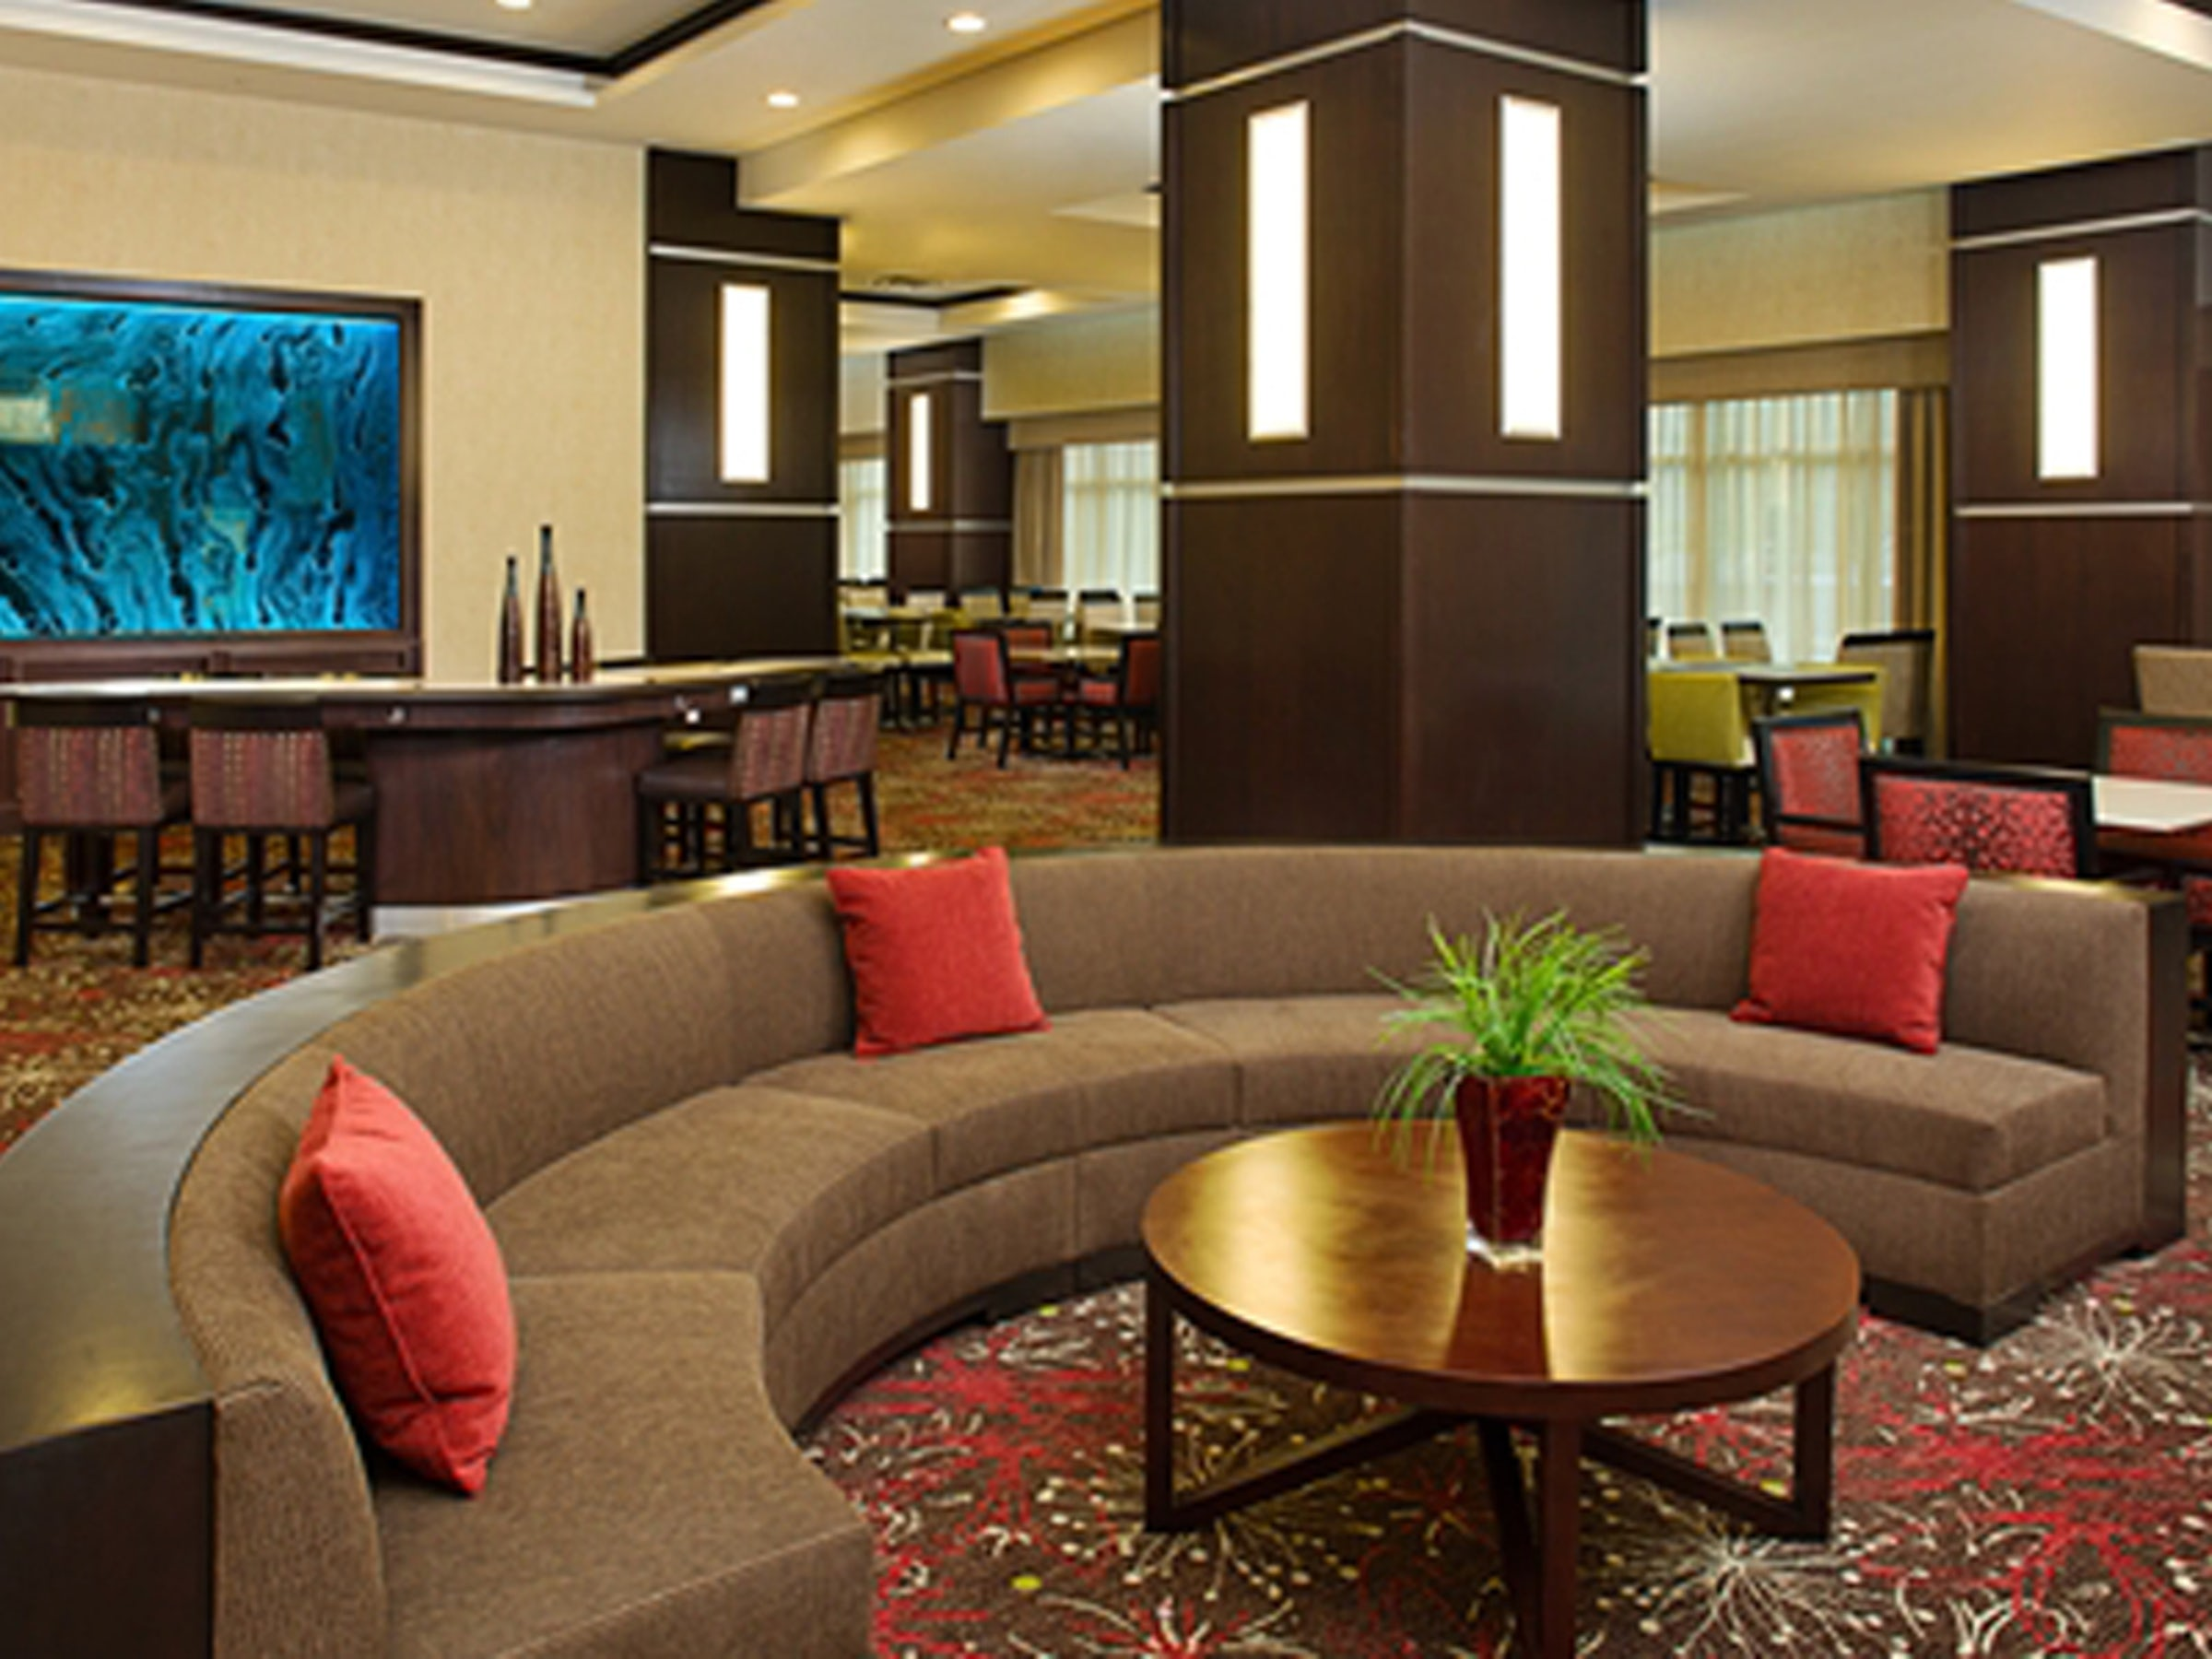 Homewood Suites by Hilton Dallas Downtown in Beyond Dallas